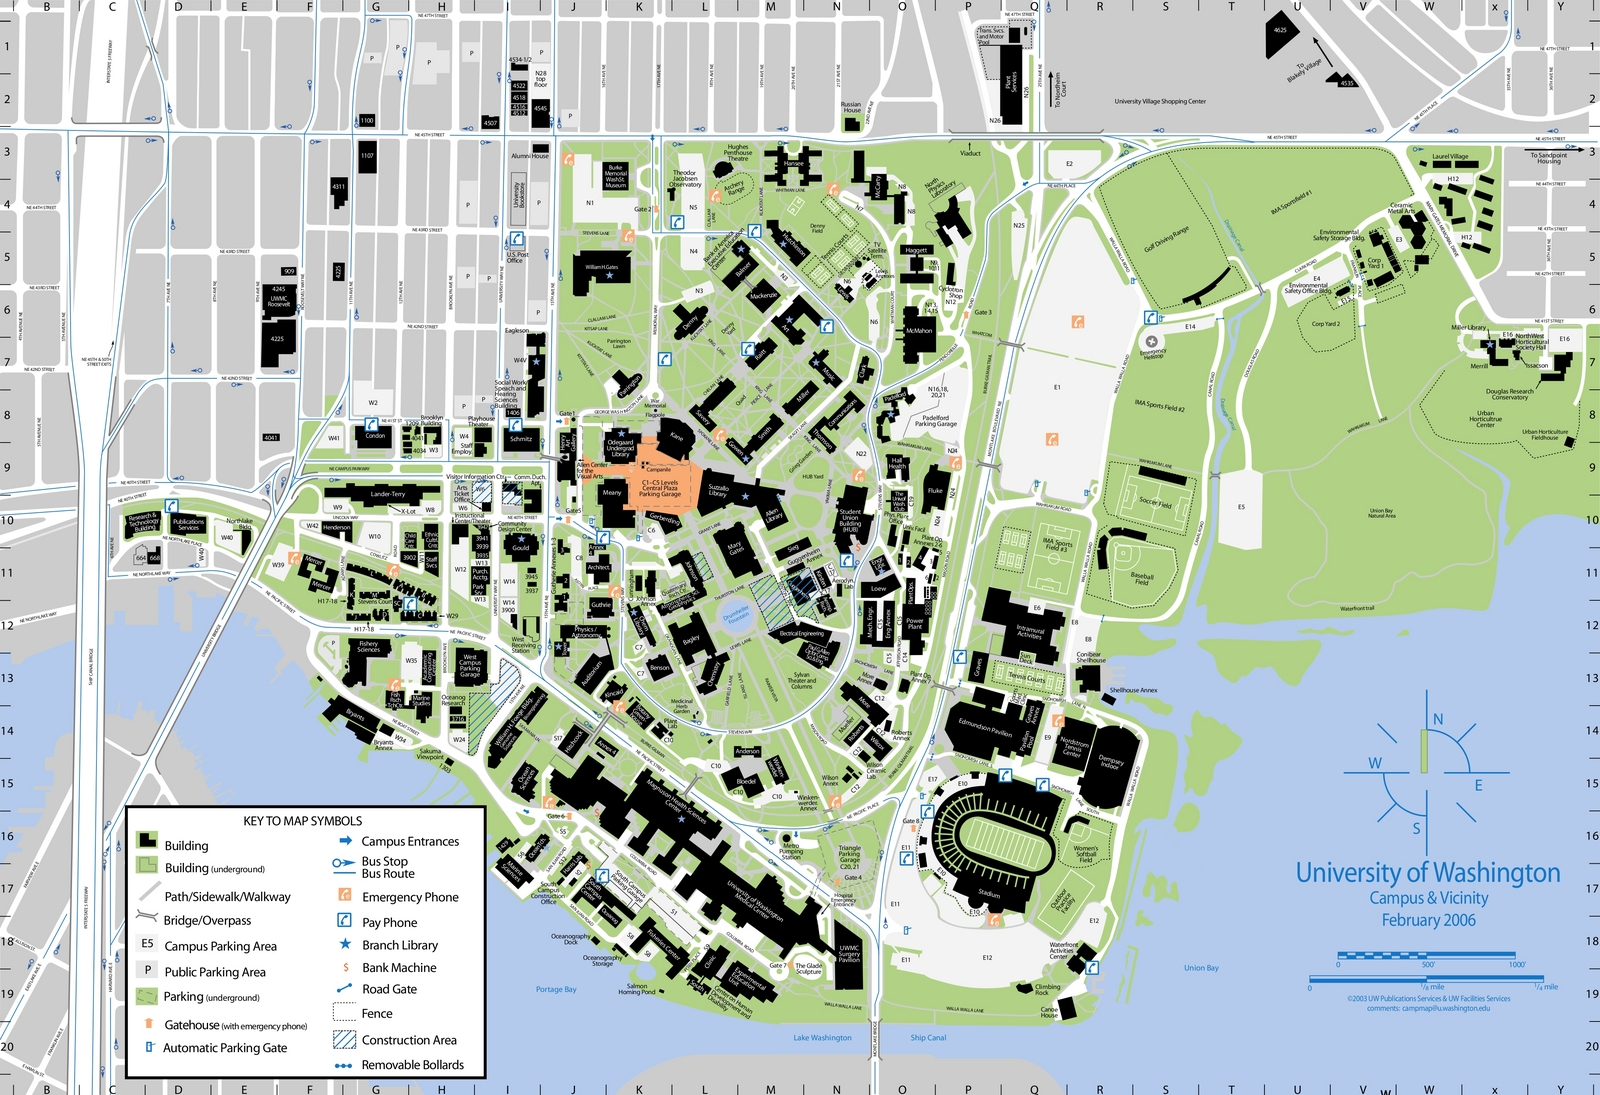 washington university campus map – bnhspine.com